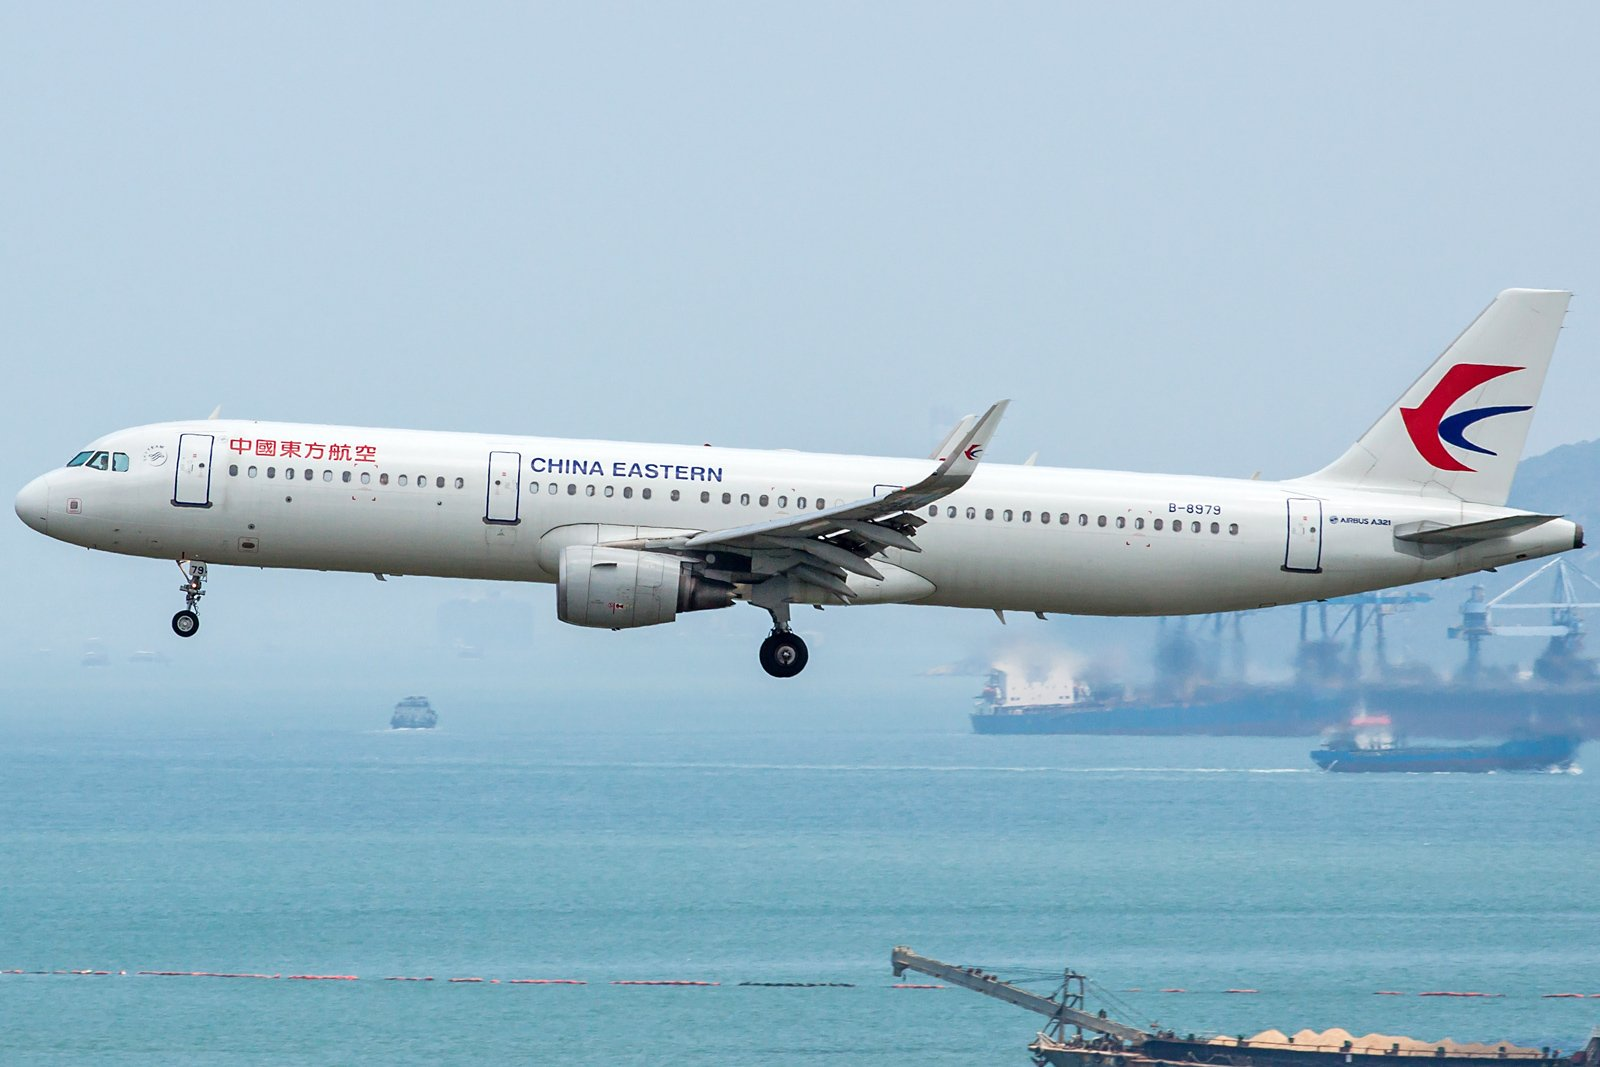 China Eastern Airlines Airbus A321-211(WL) B-8979